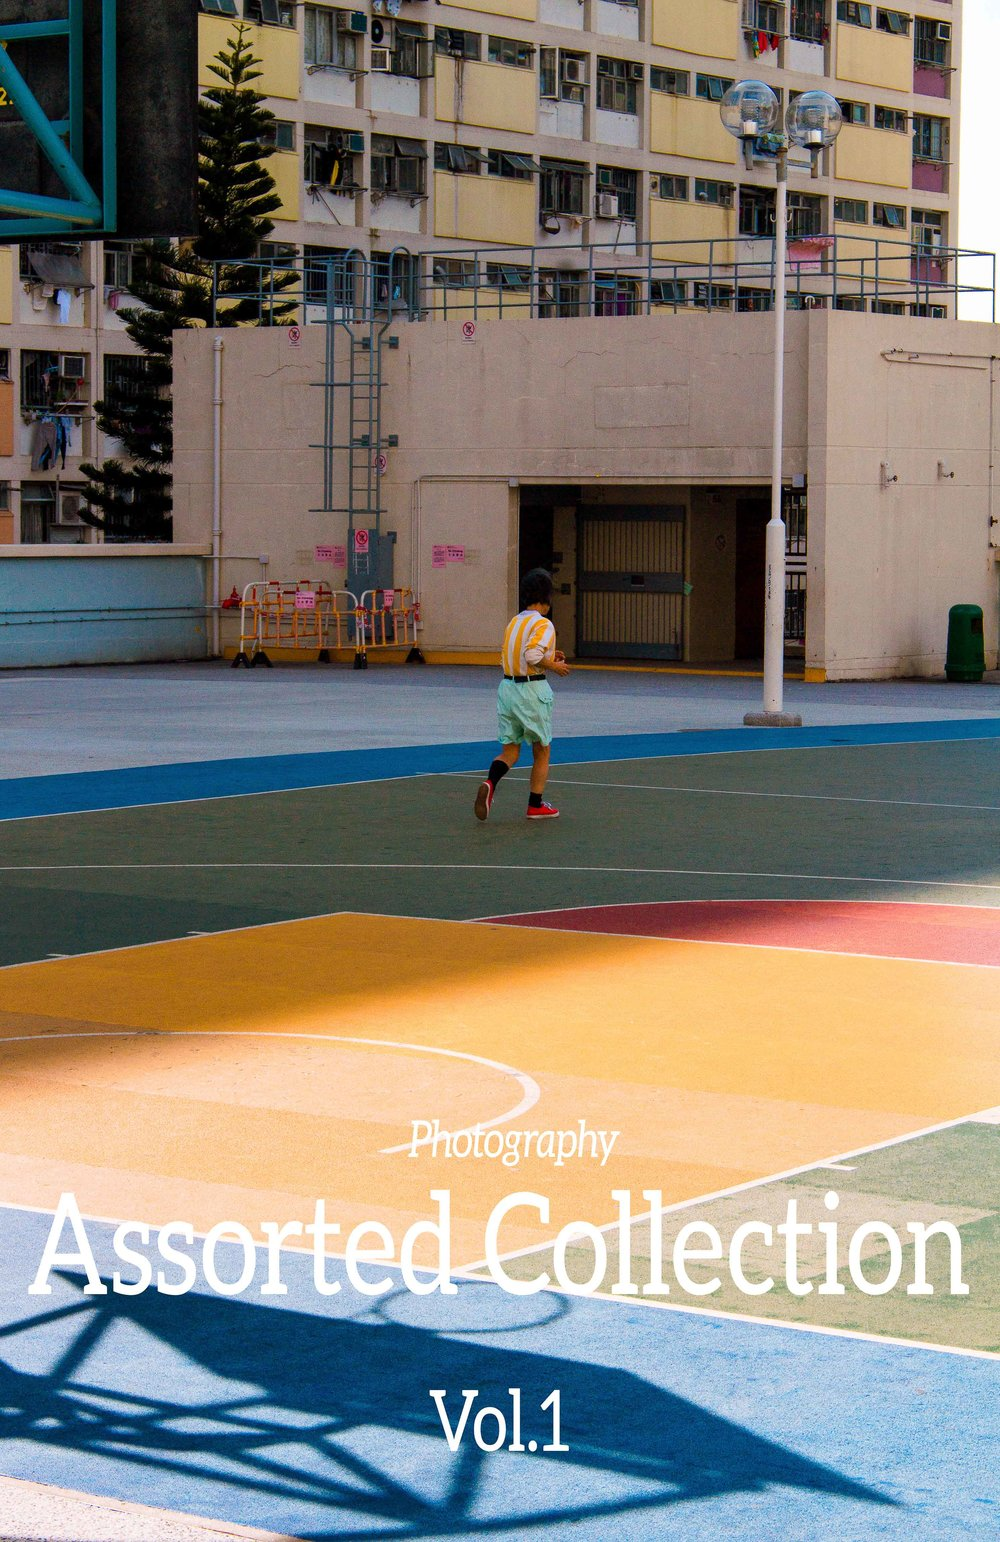 Assorted Collection Vol.1 - Hong Kong, Seoul, Incheon, Hanoi.